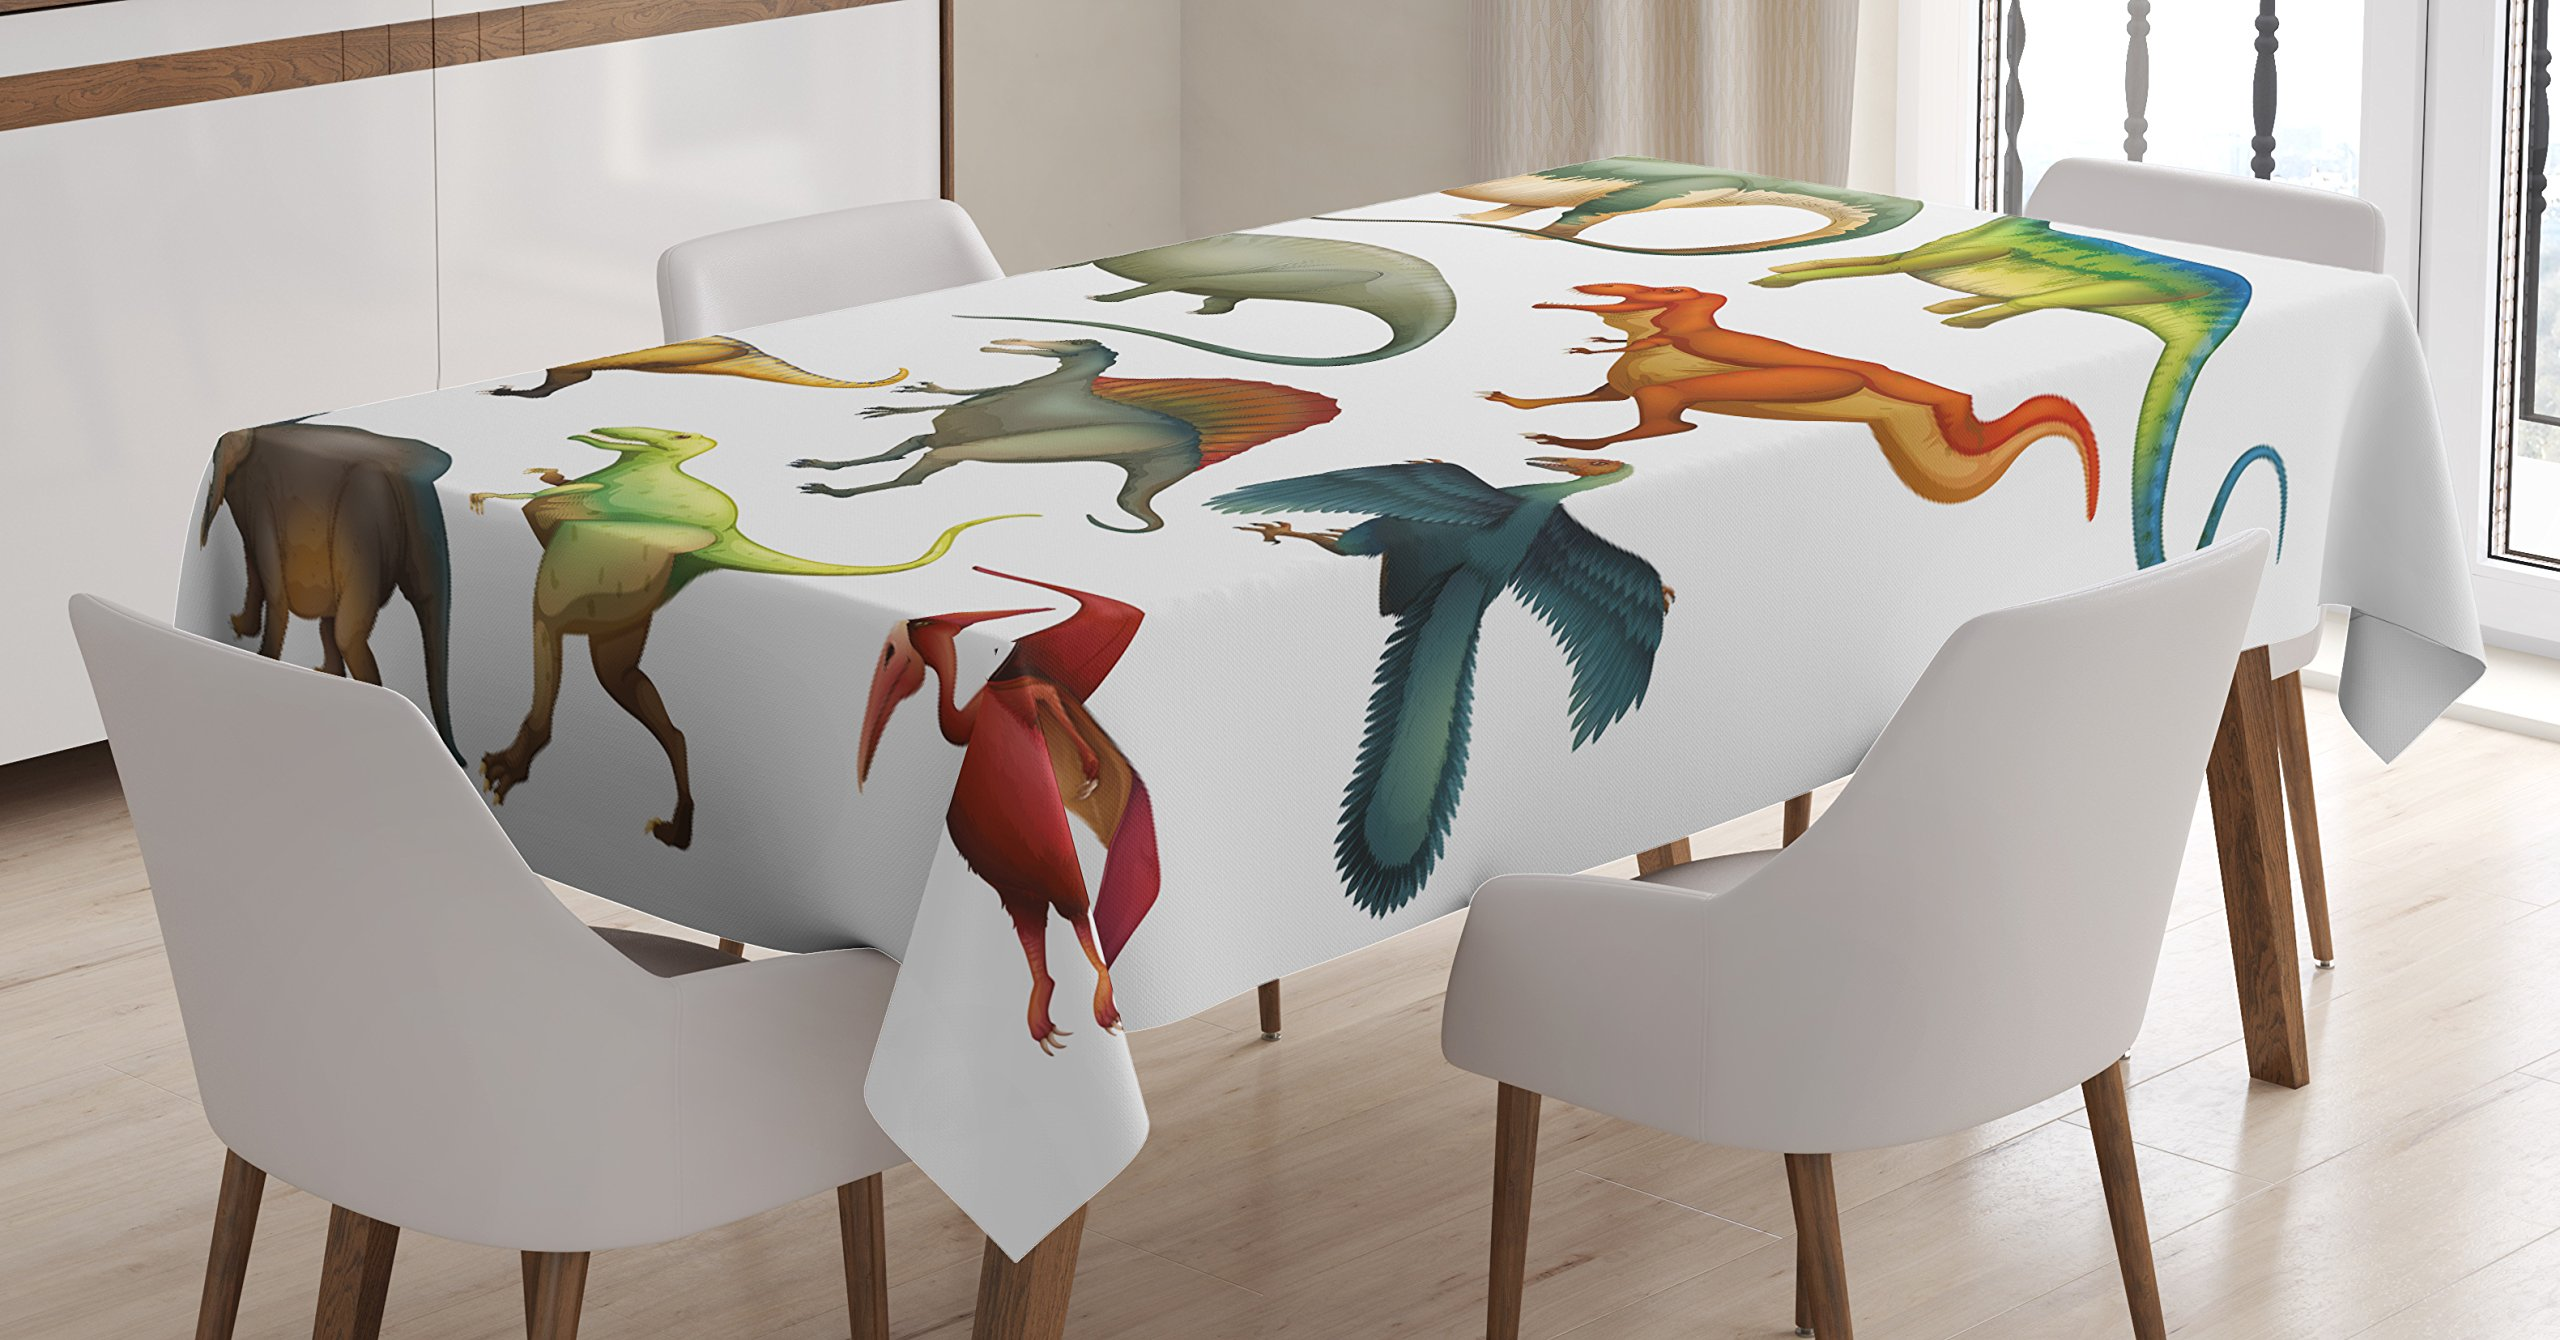 Ambesonne Dinosaur Tablecloth, Various Different Ancient Animals from Jurassic Period Cartoon Collection Mammals, Dining Room Kitchen Rectangular Table Cover, 60 W X 90 L inches, Multicolor